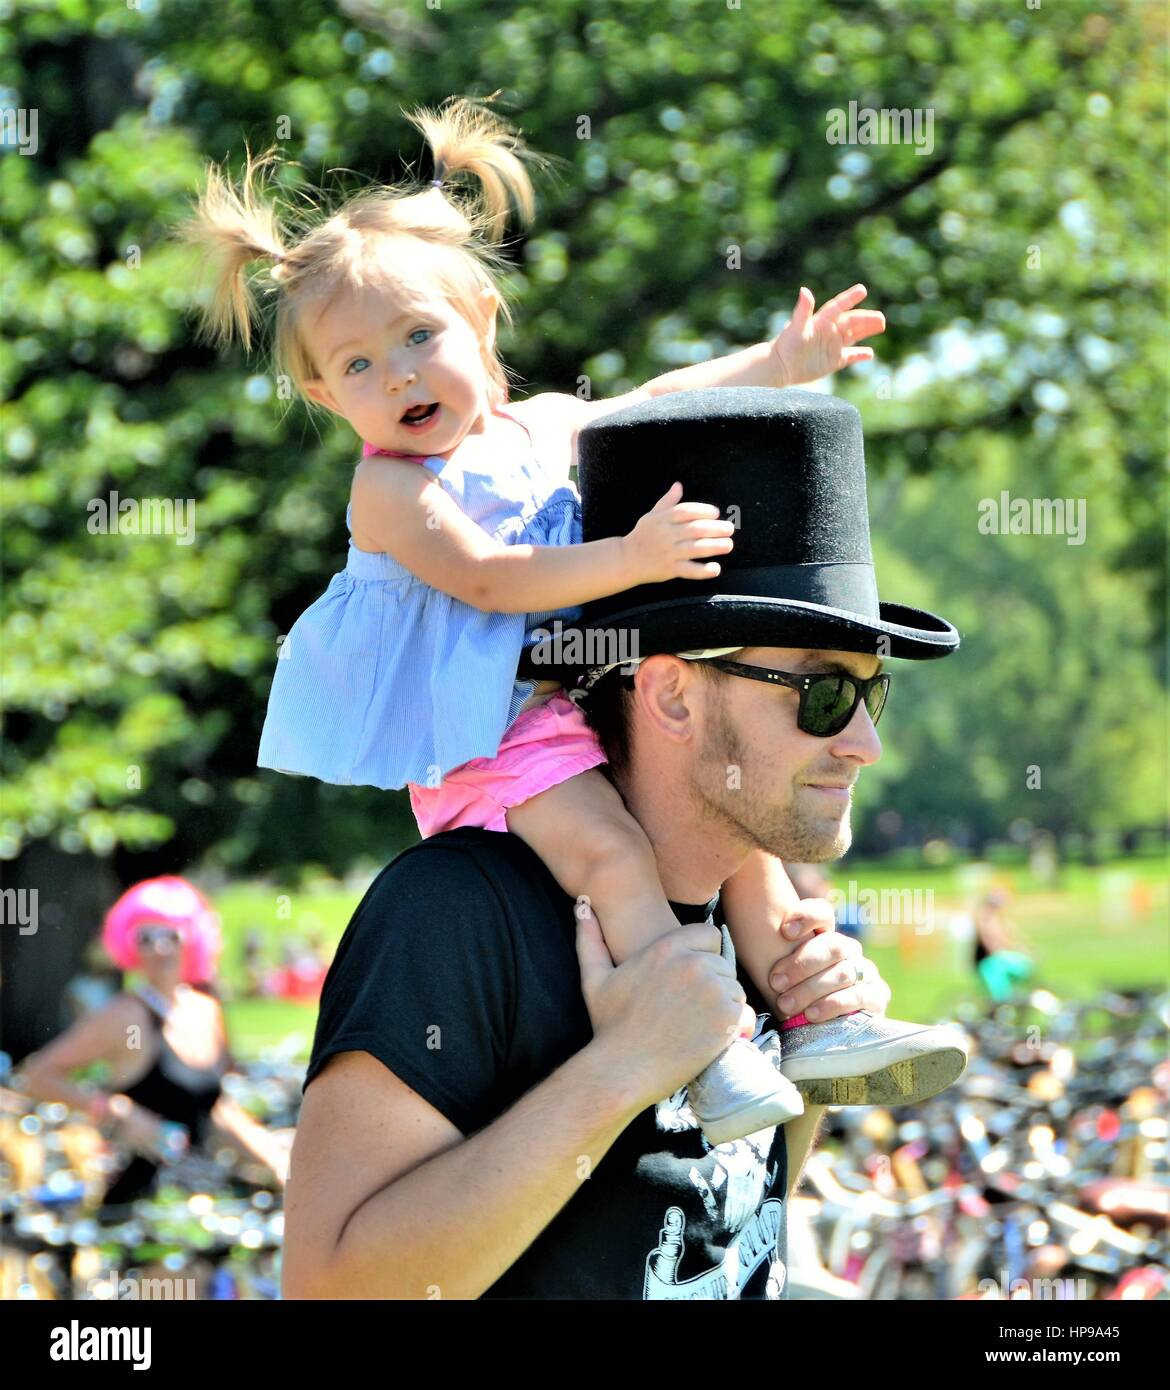 Father and Baby Daughter Having Fun Together - Stock Image